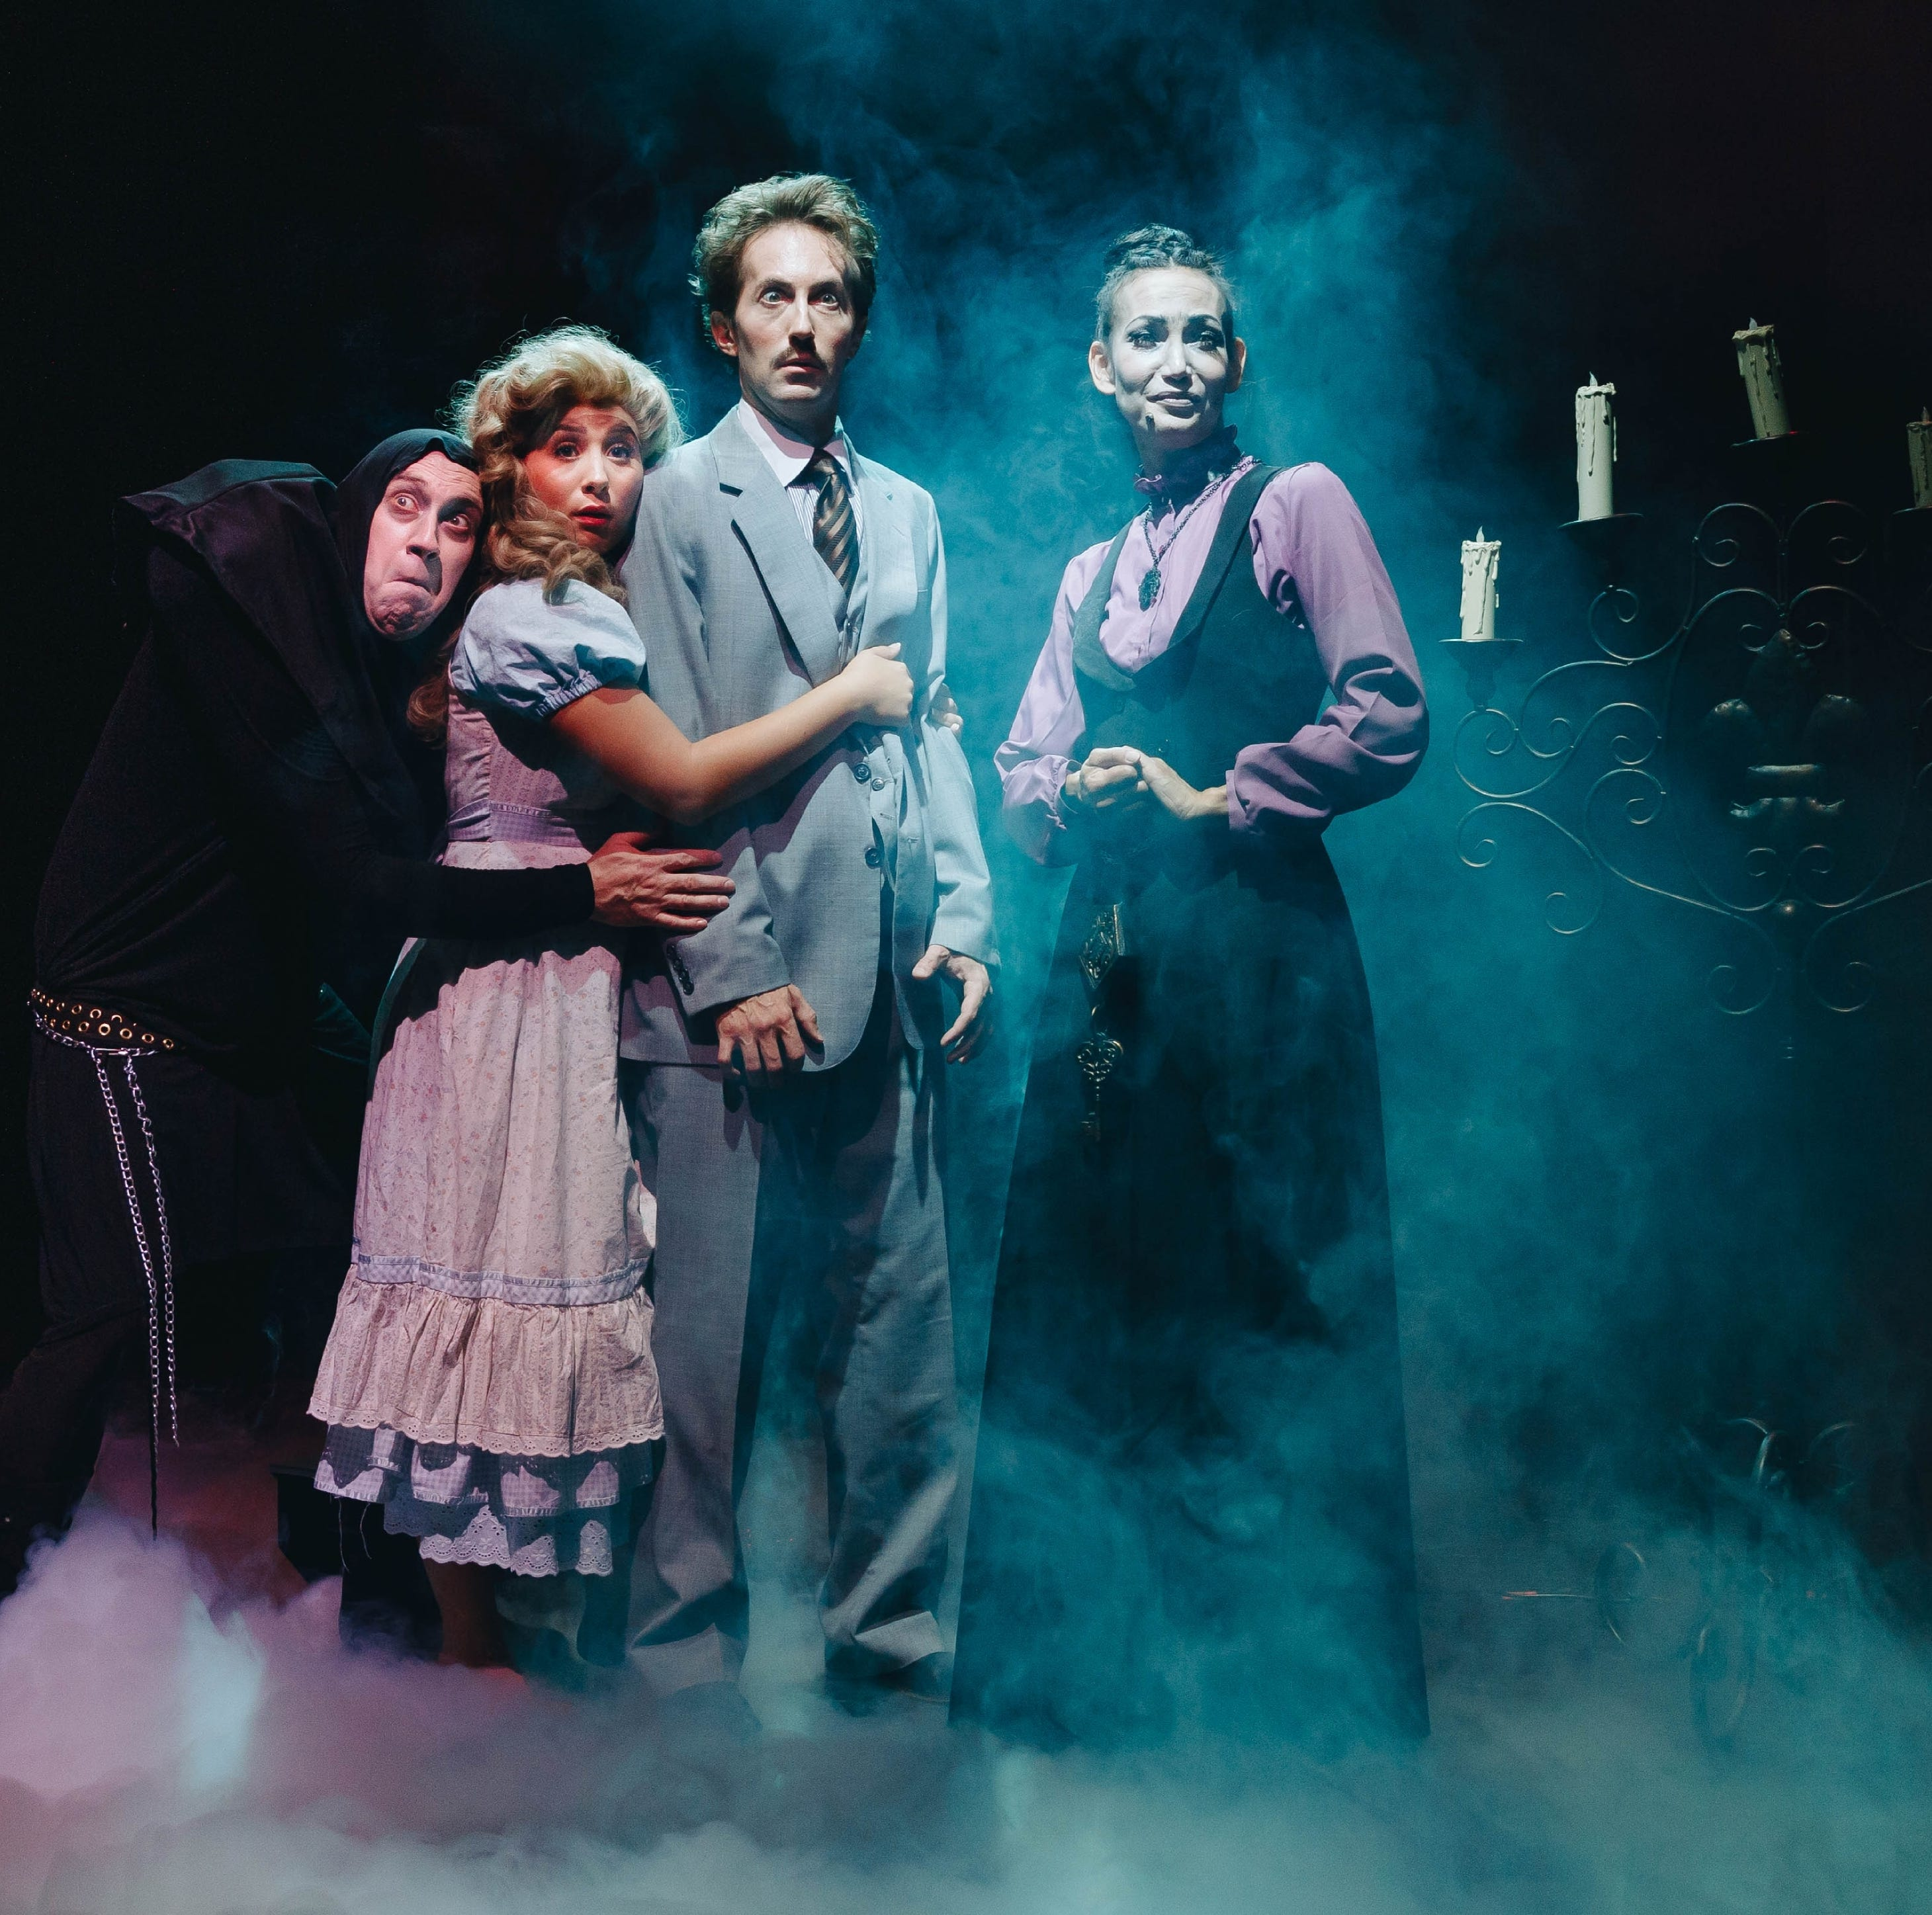 'Young Frankenstein' comes alive at The Electric Theater